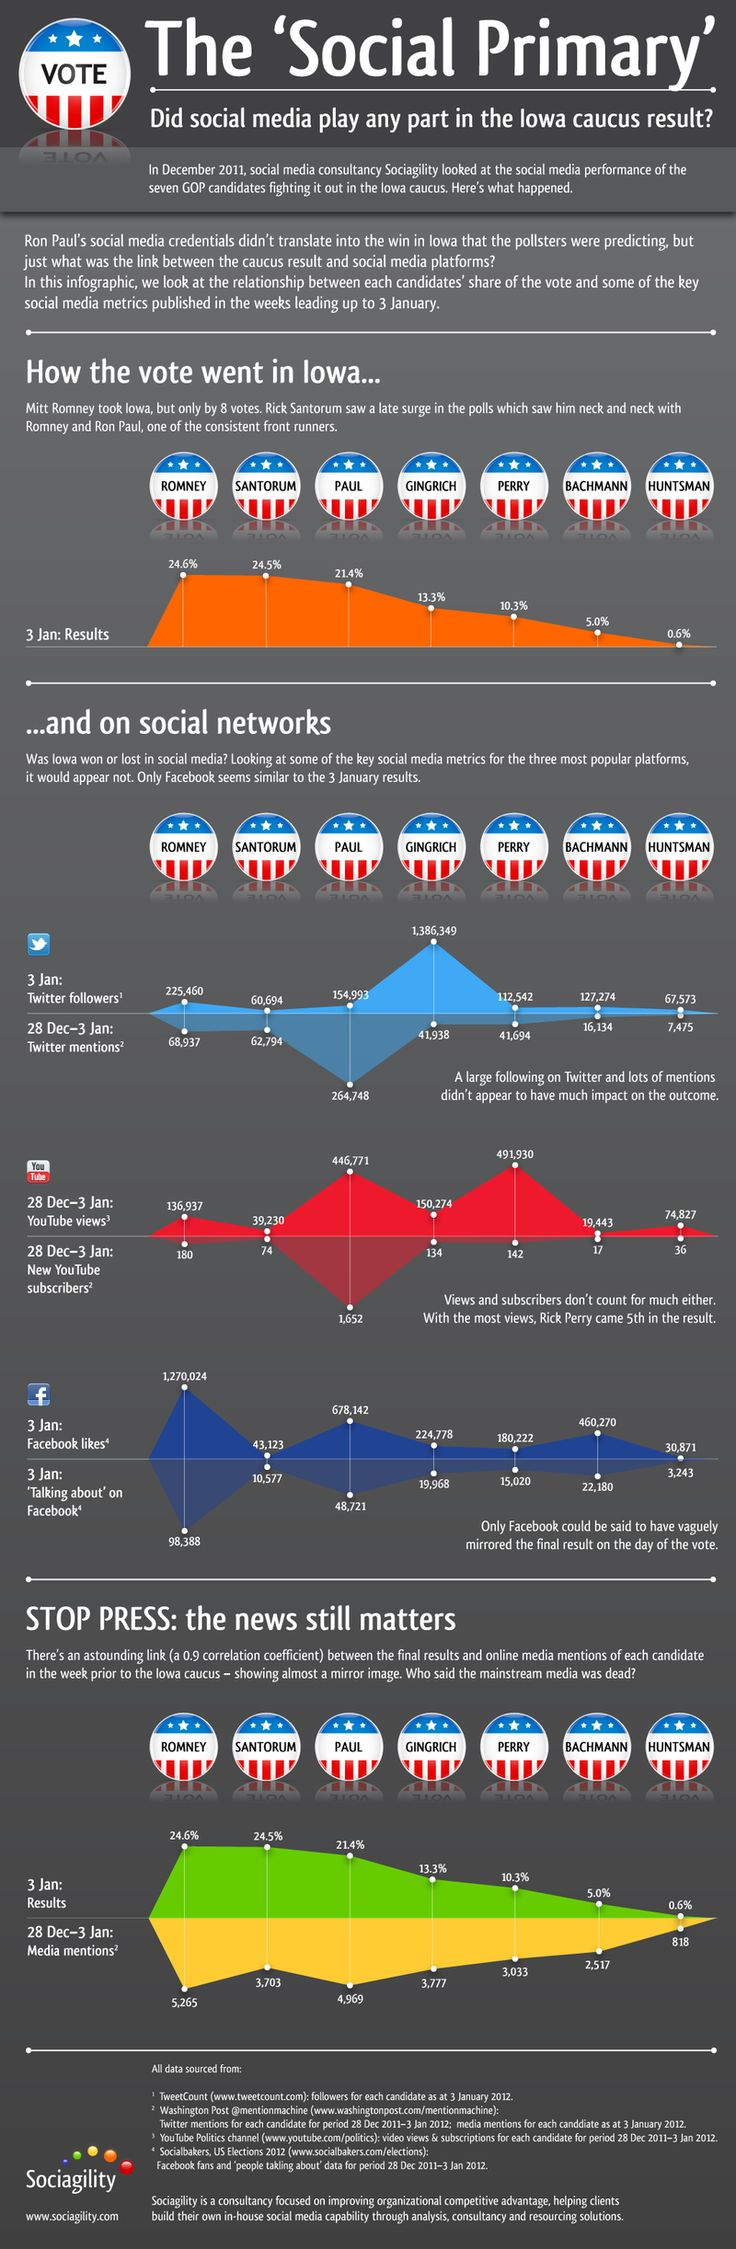 Did Social Media Play A Part In The Results Of The Iowa Caucus? #infographic